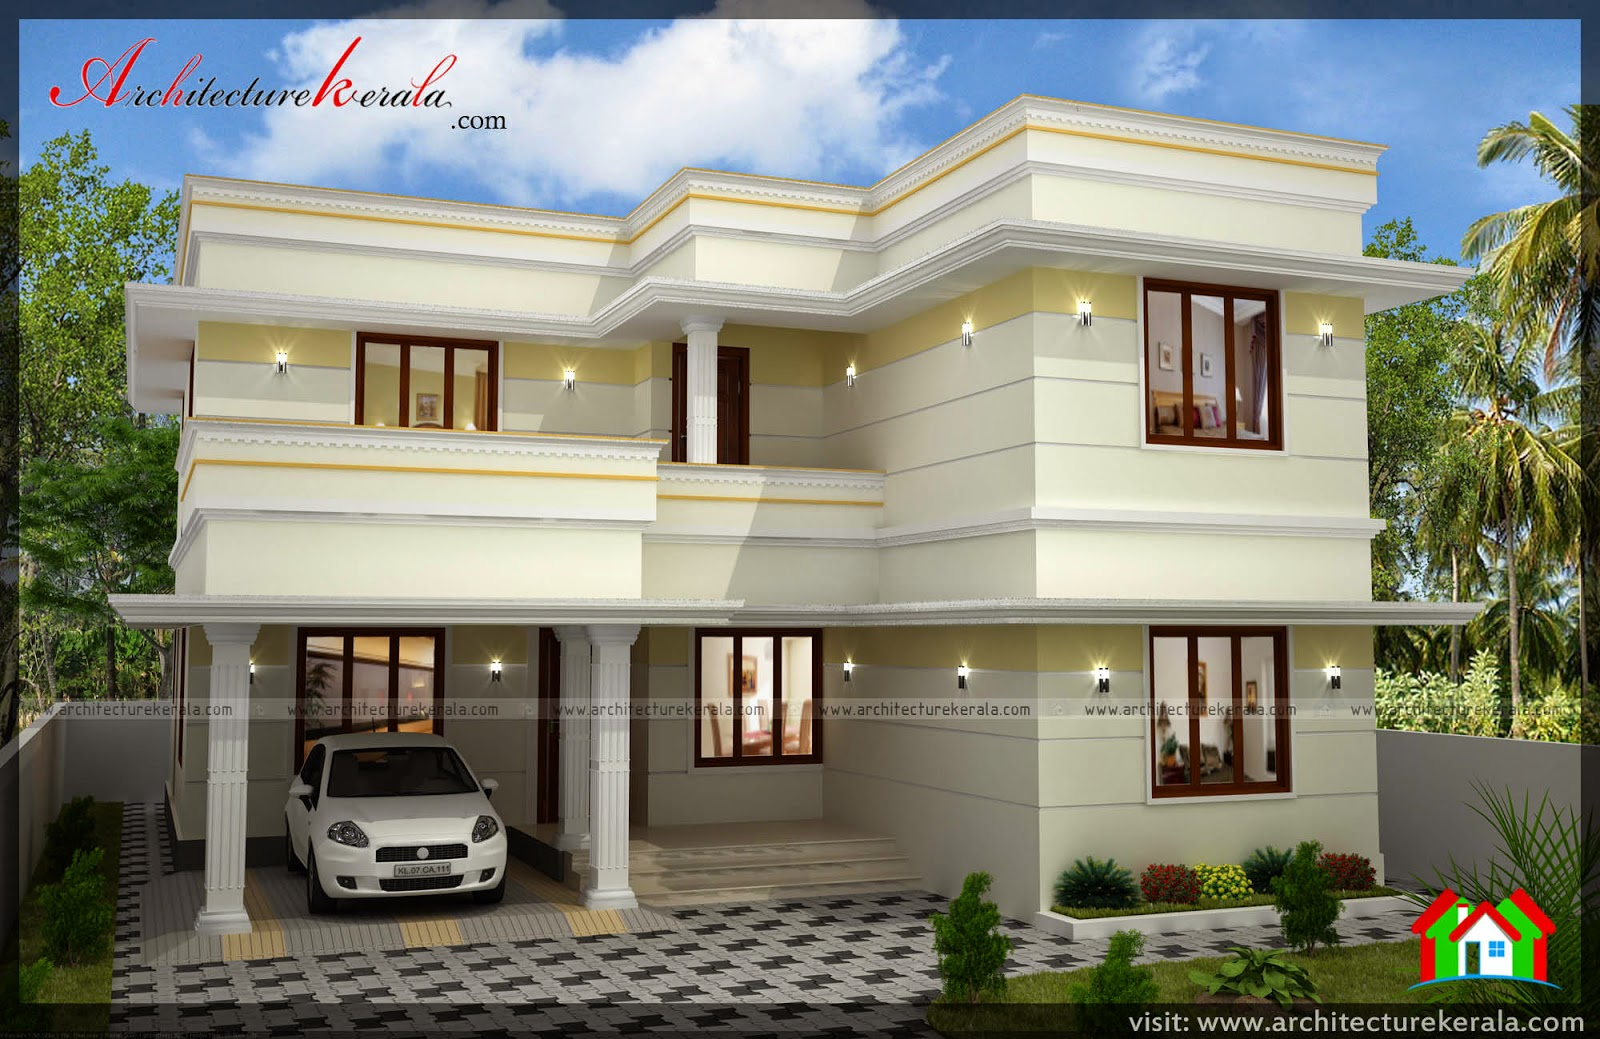 Three bedroom two storey house plan architecture kerala - Three story home designs ...